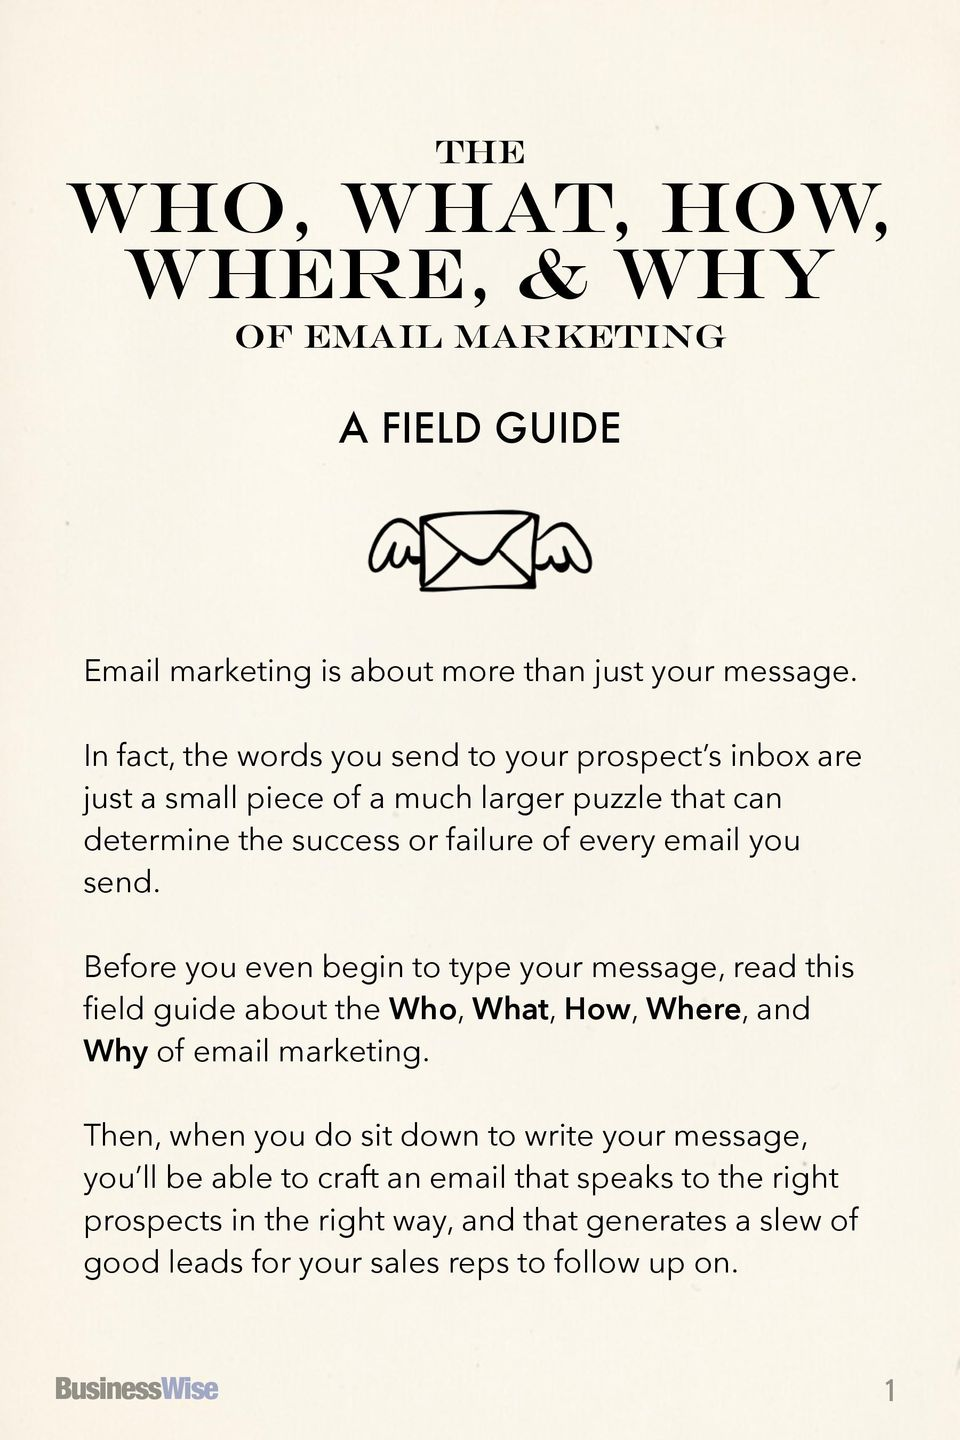 send. Before you even begin to type your message, read this field guide about the Who, What, How, Where, and Why of email marketing.